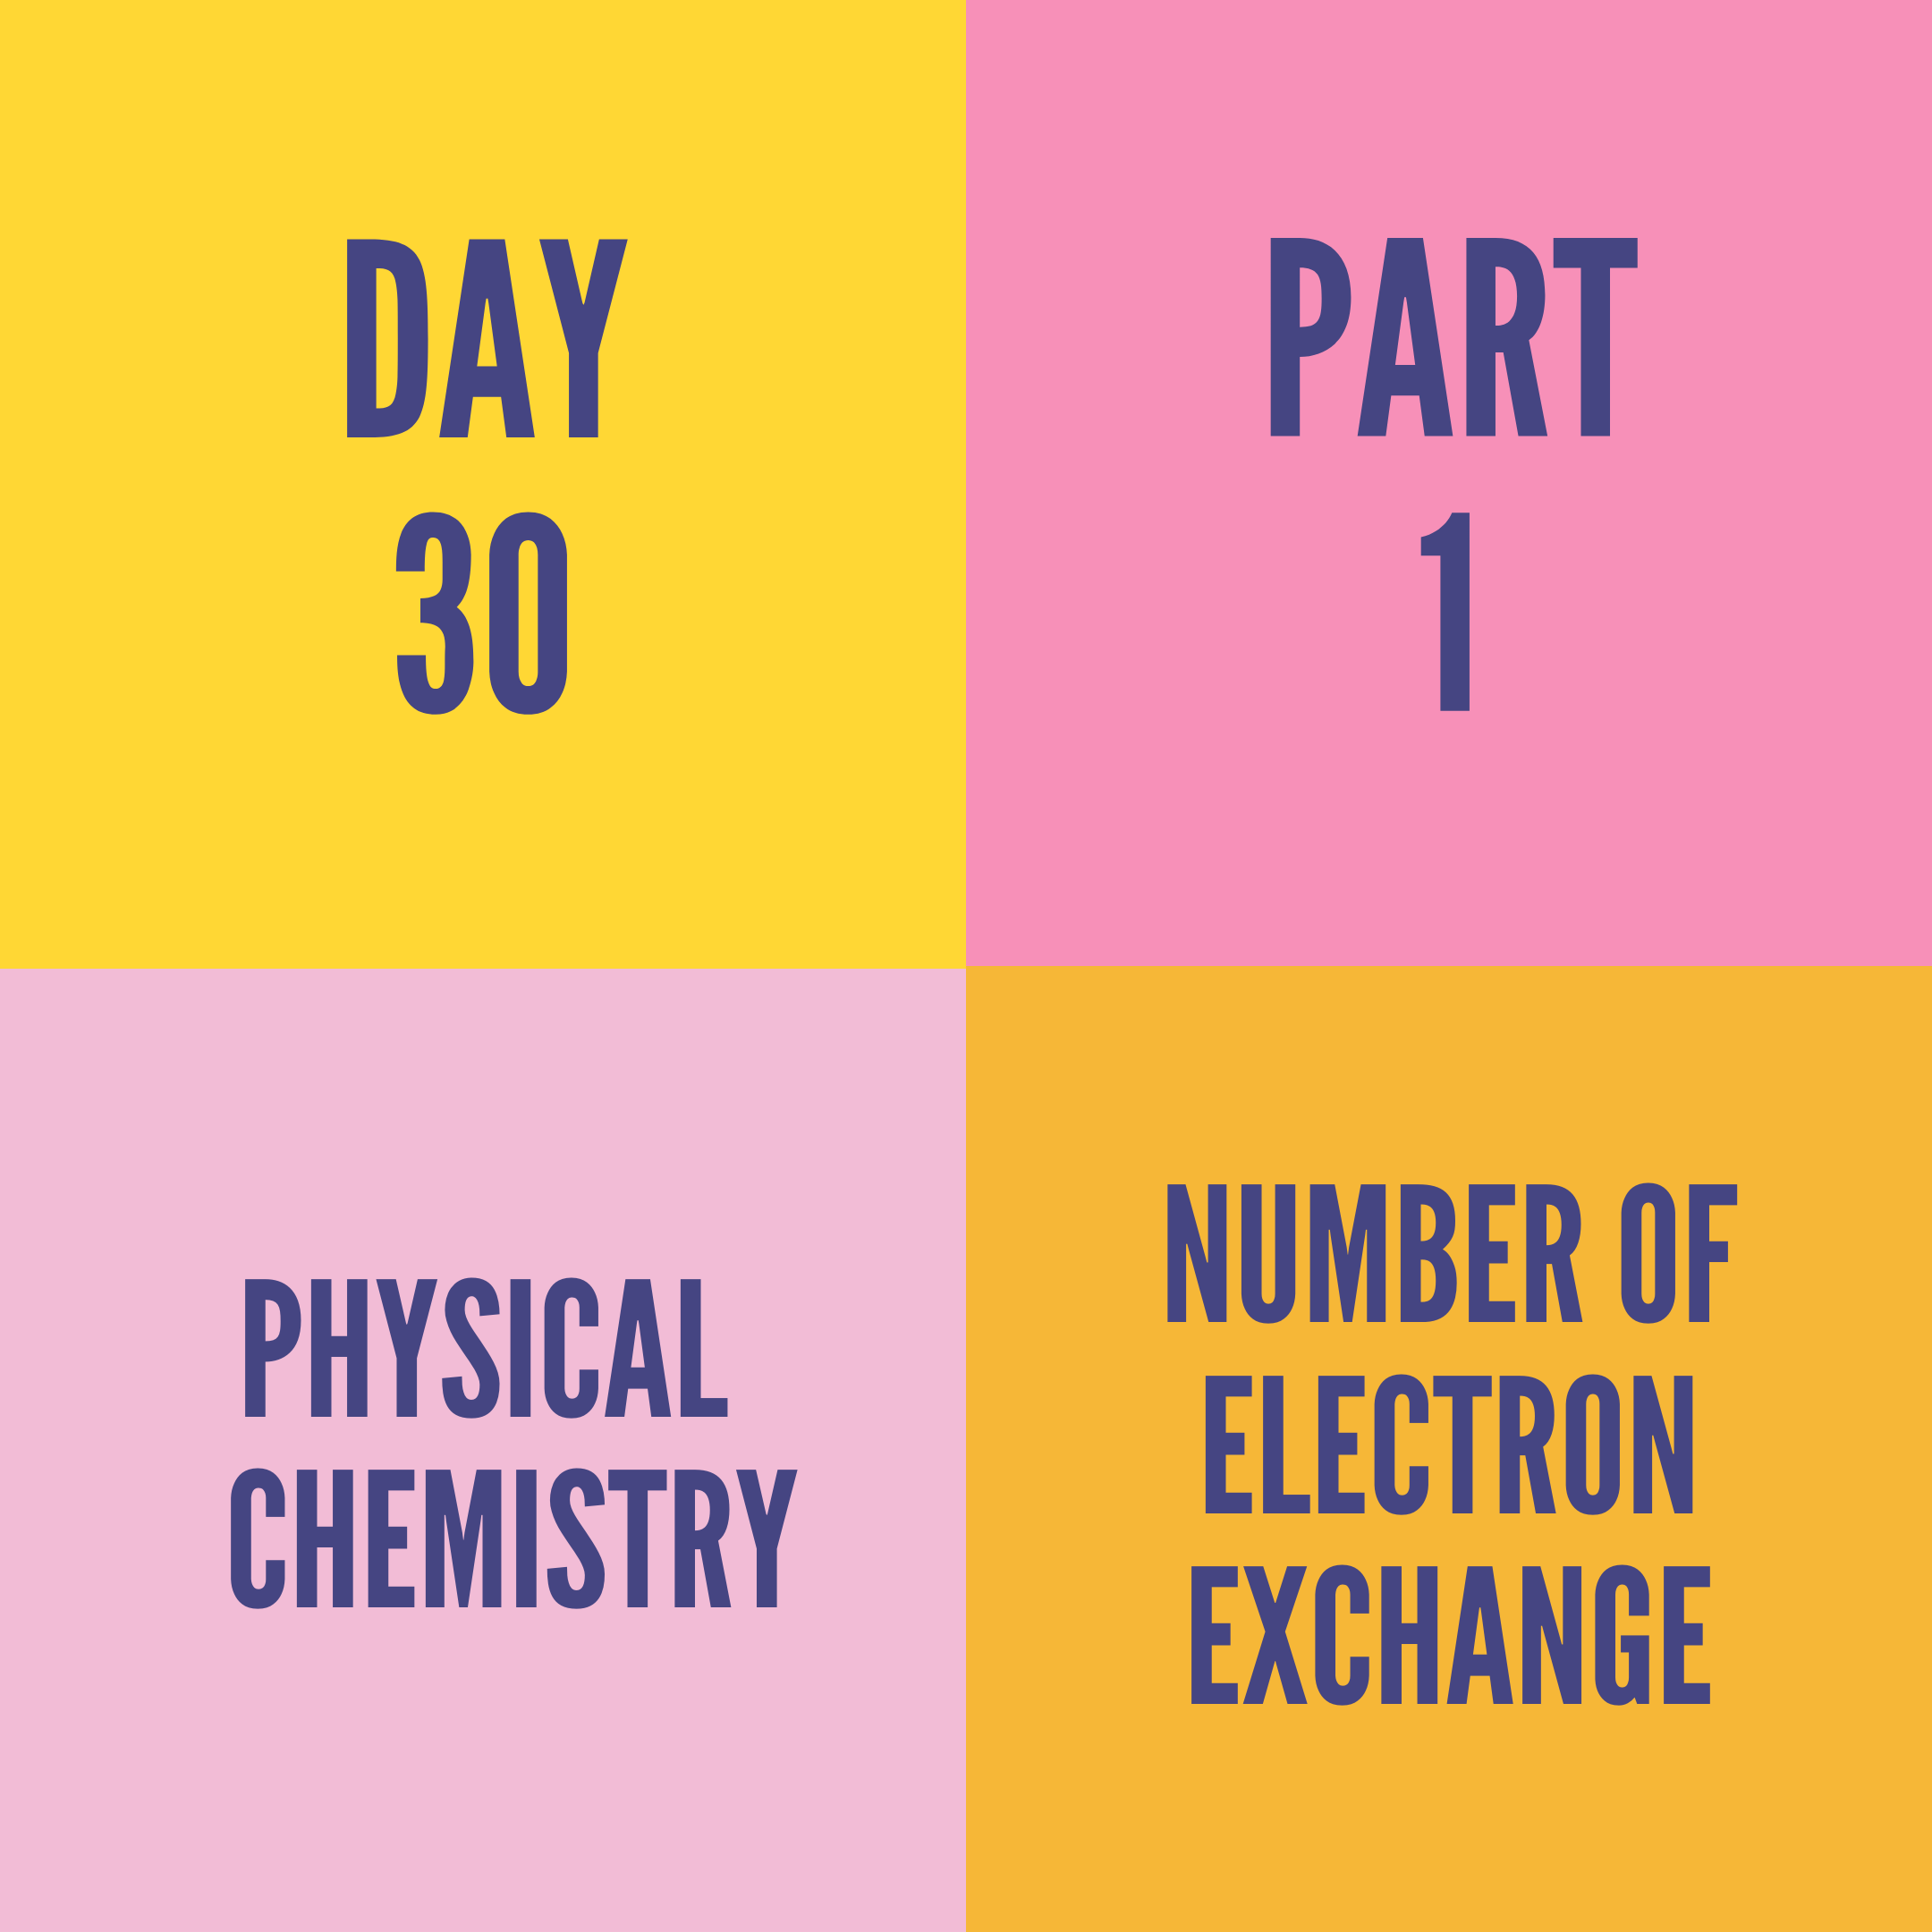 DAY-30 PART-1 NUMBER OF ELECTRON EXCHANGE